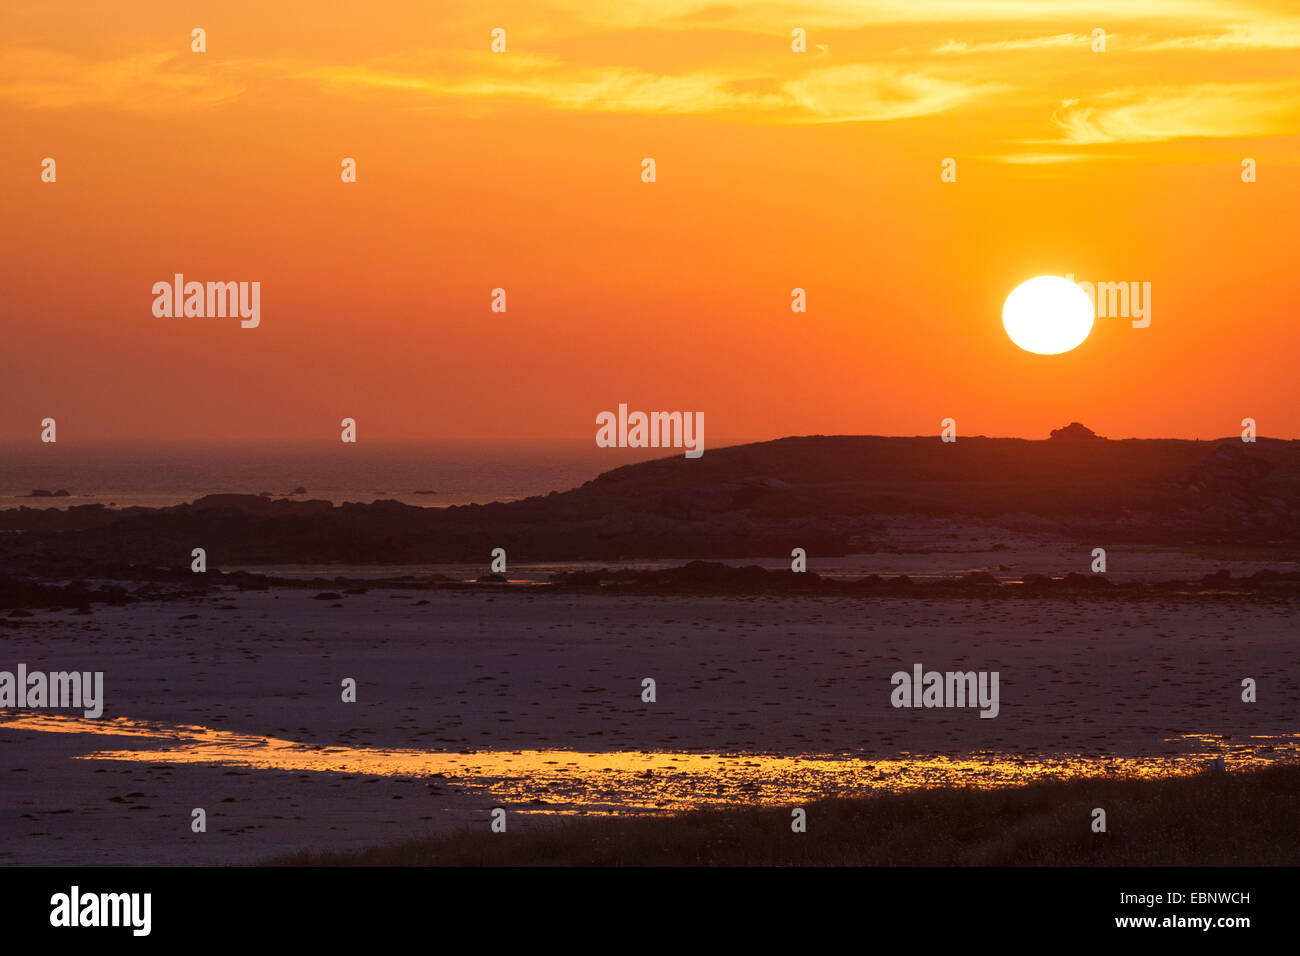 idyllic sunset over the sea, France, Brittany - Stock Image